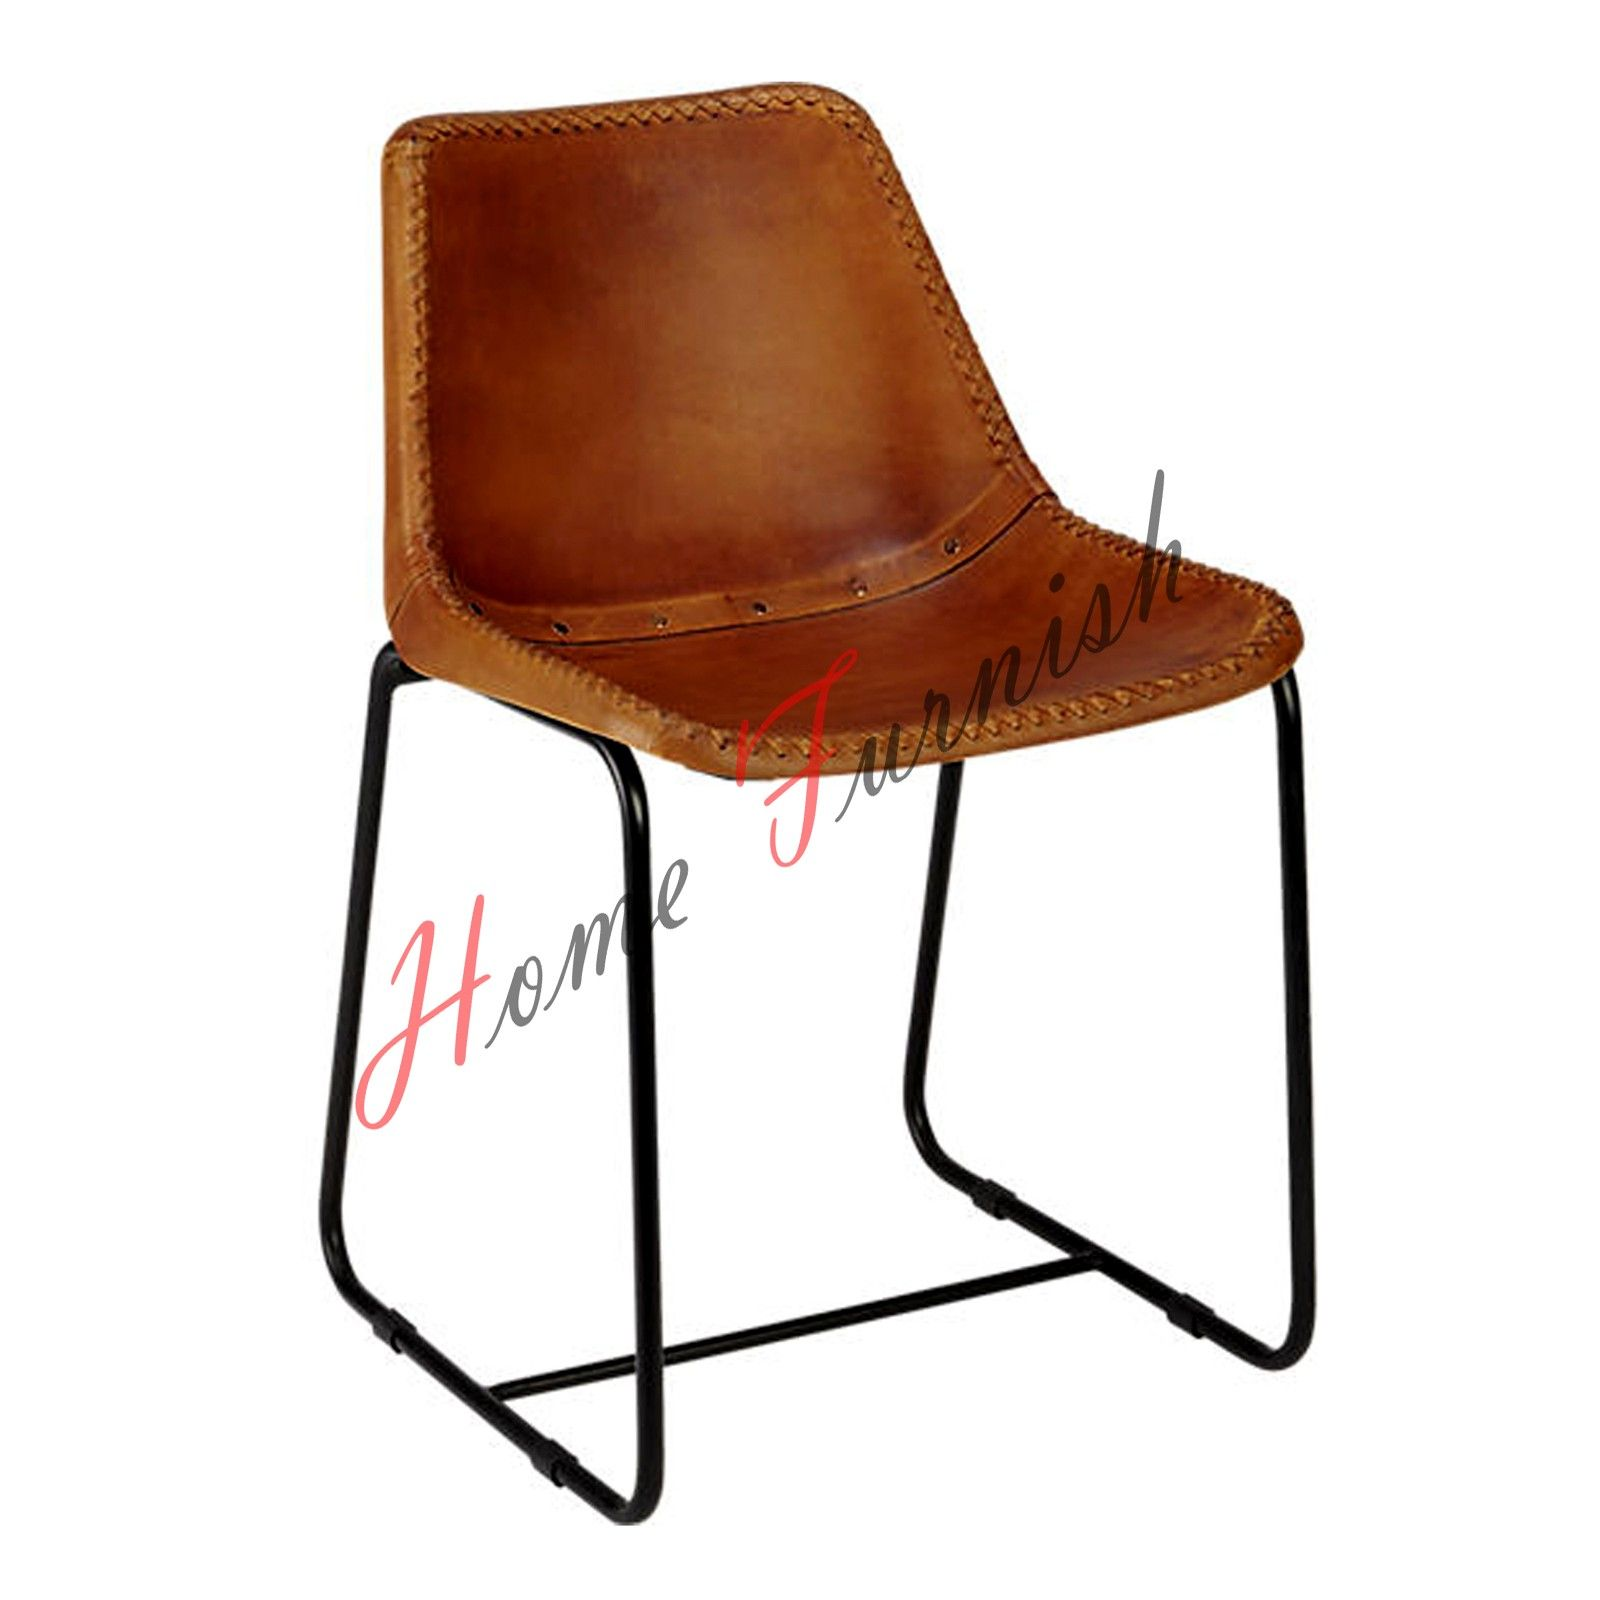 Vintage Industrial Style Dining Chair Leather Brown Chair Metal